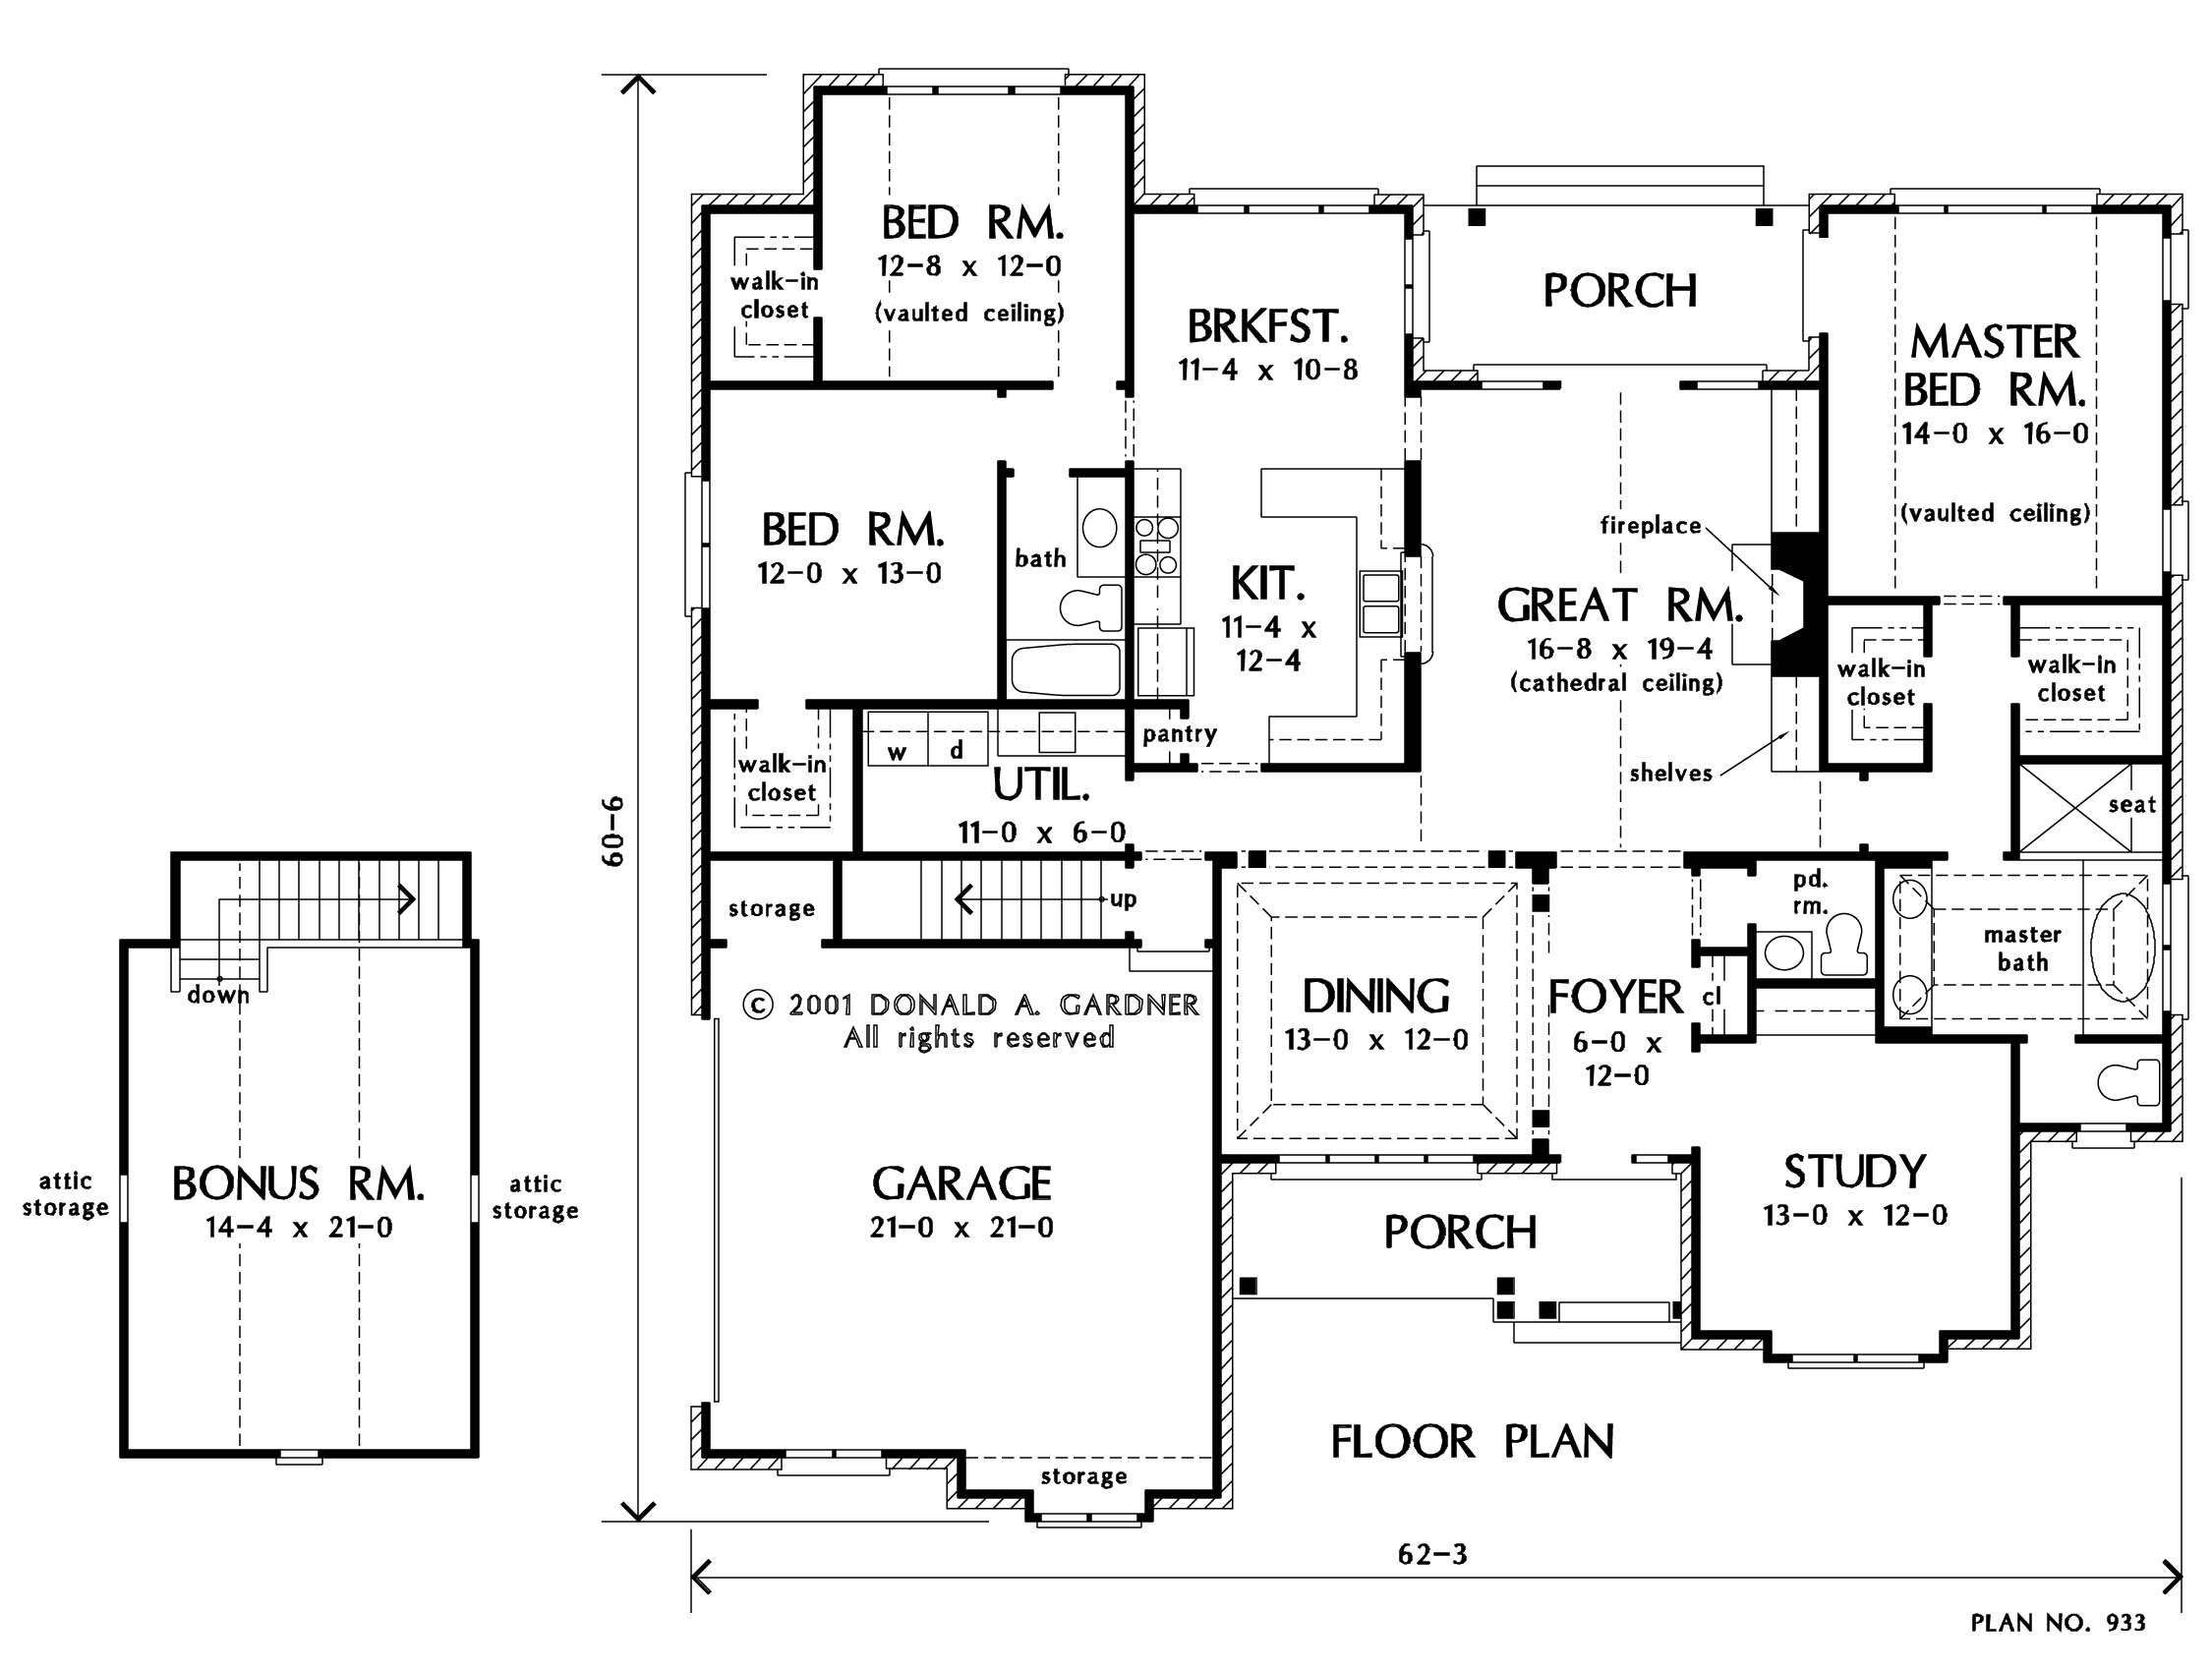 House Plan Cherokee Nation House Plans House And Home Design House Plans With Pictures House Plans Stair Plan